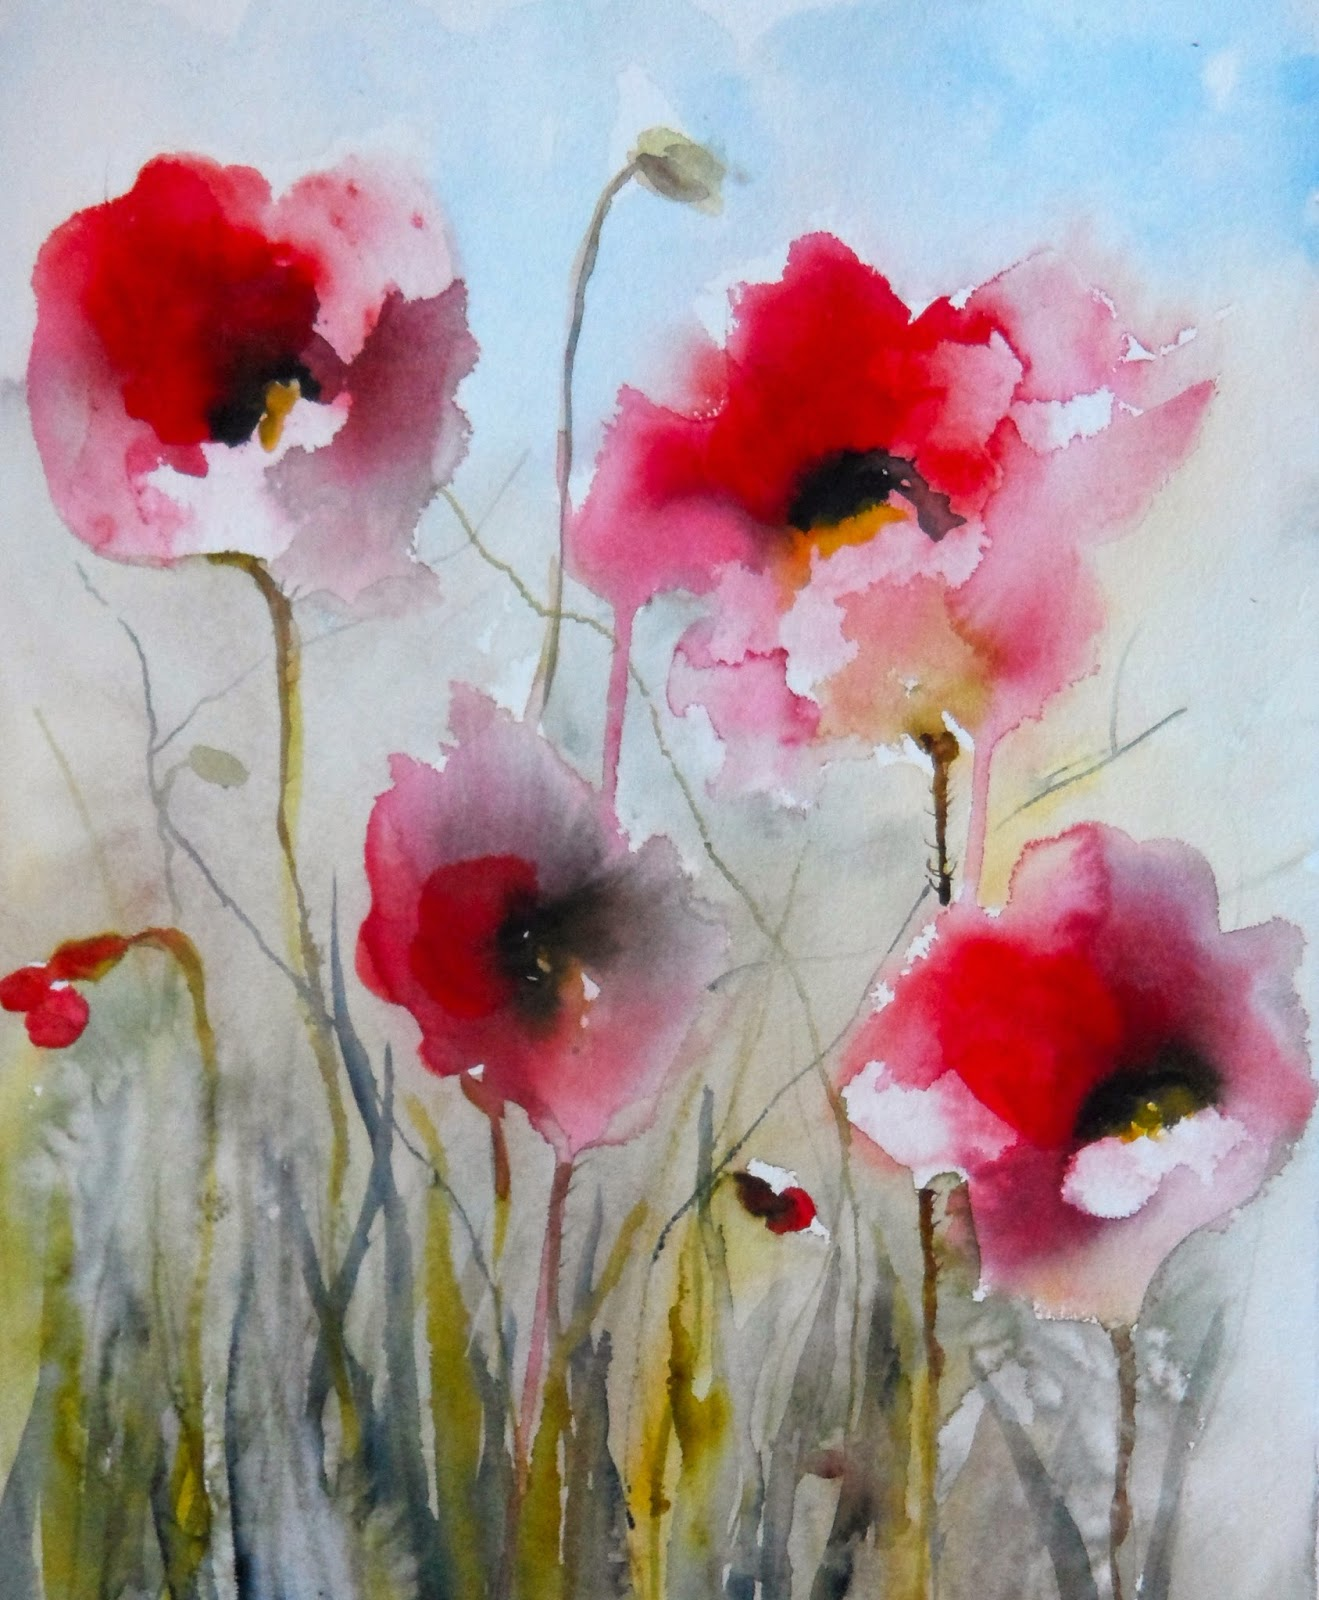 field poppies ii sold red poppies ix sold dreamy poppiesPoppies Watercolor Painting